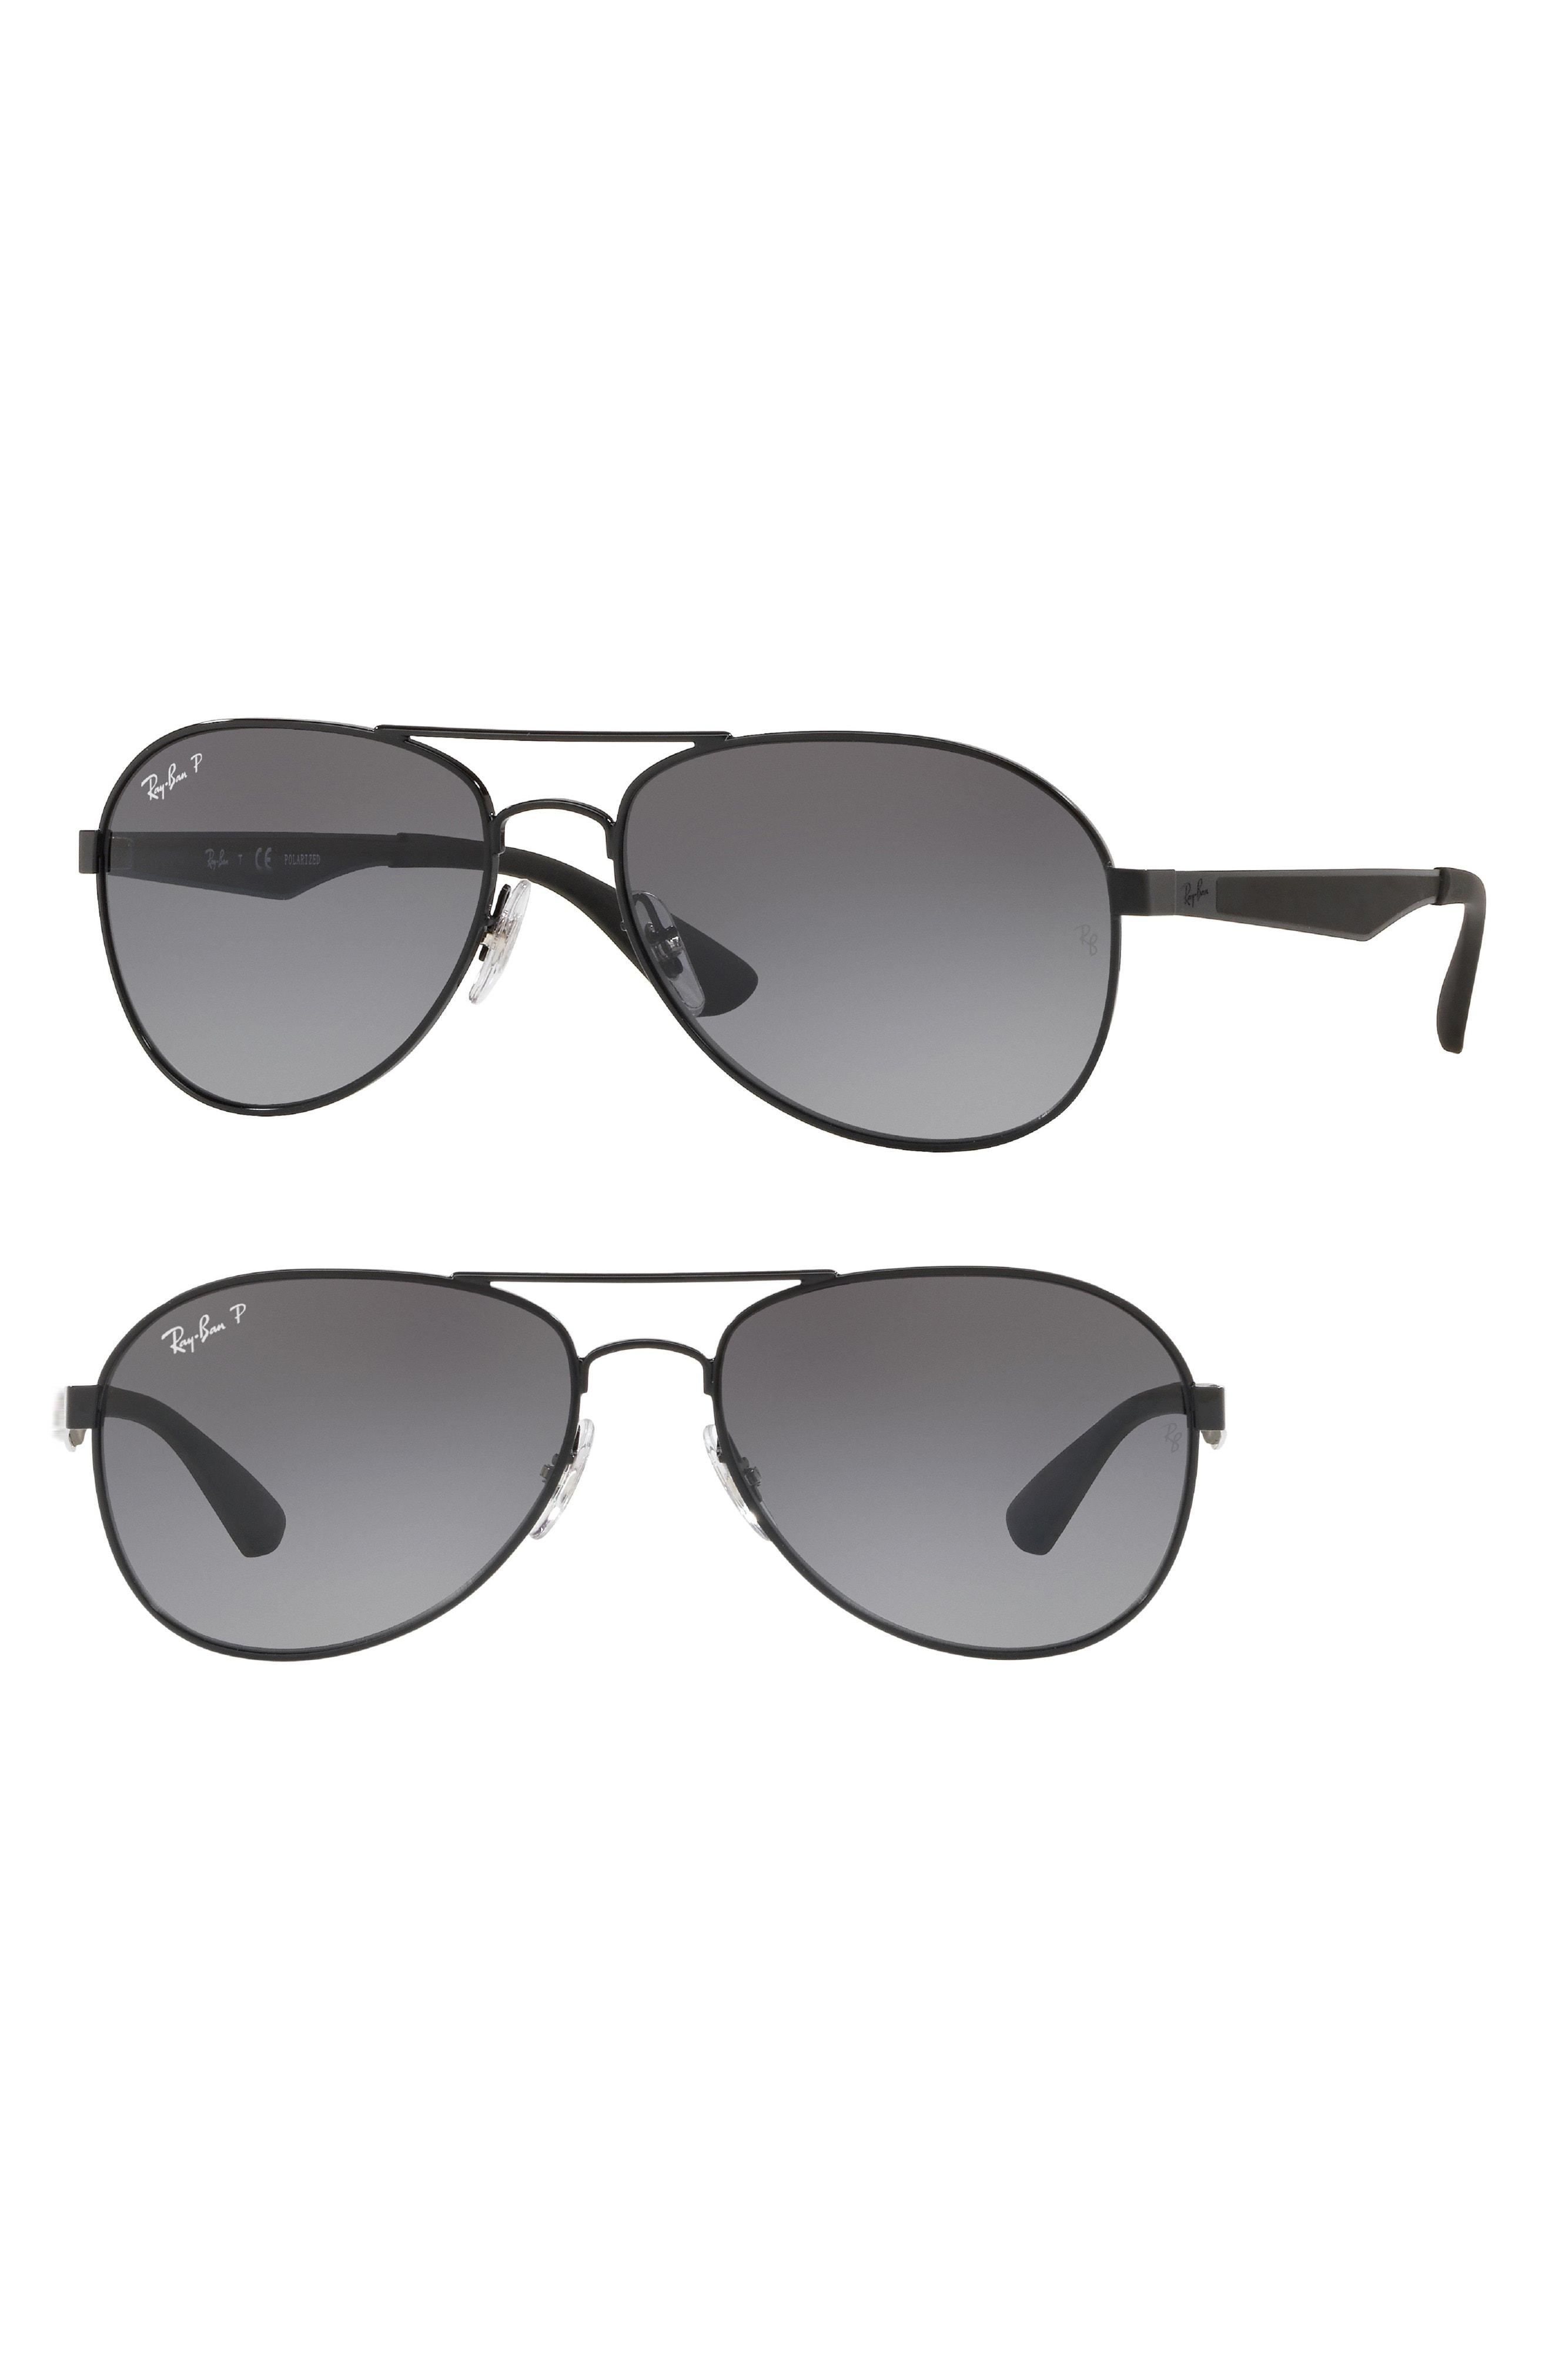 f59a0f6290 Lyst - Ray-Ban Active Lifestyle 61mm Polarized Pilot Sunglasses - in ...